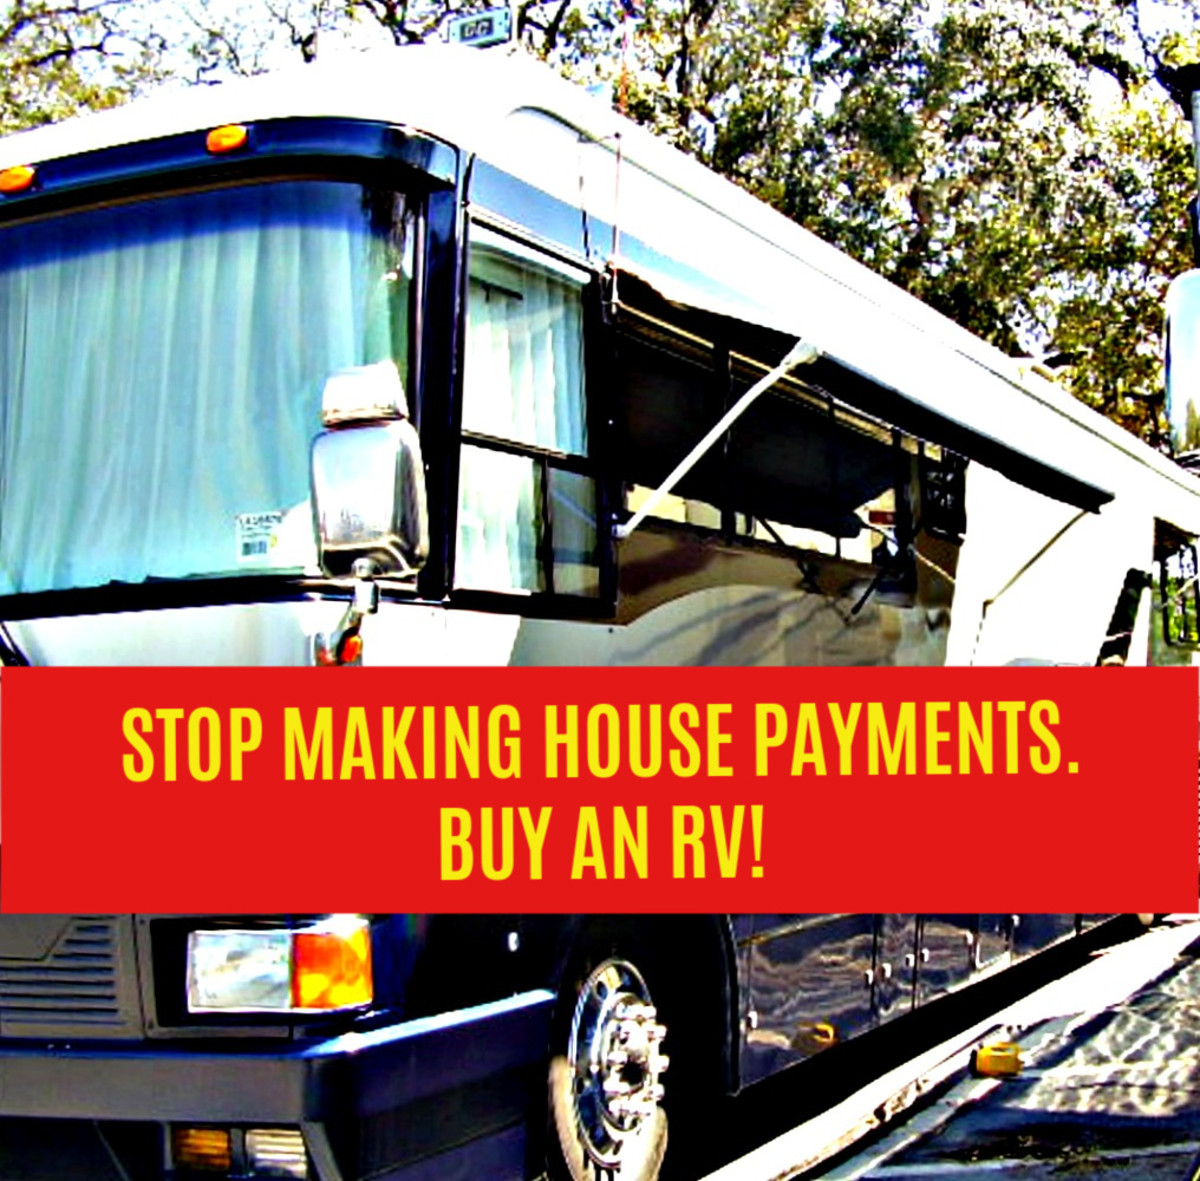 Forget Making Expensive House Payments: Buy an RV!